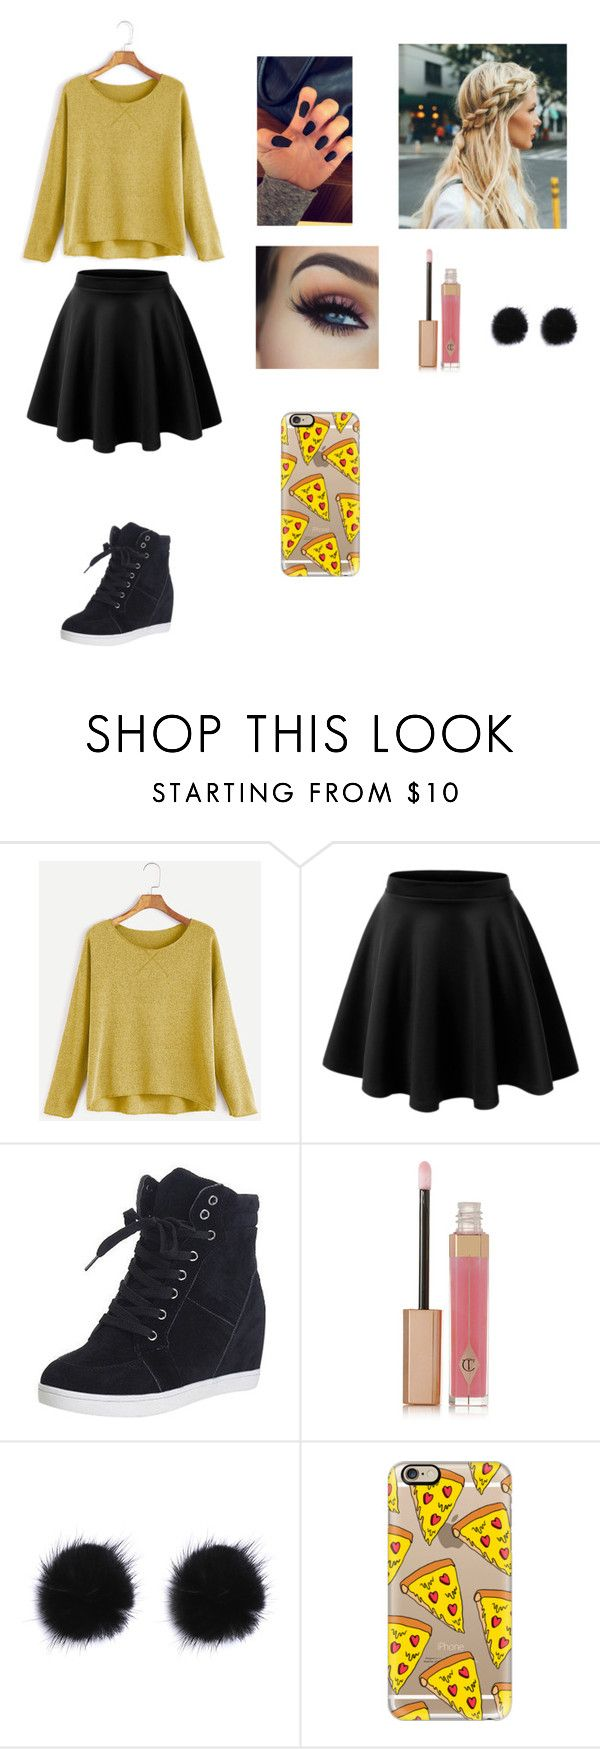 """Yellow"" by ciana-si on Polyvore featuring moda, LE3NO, Charlotte Tilbury e Casetify"